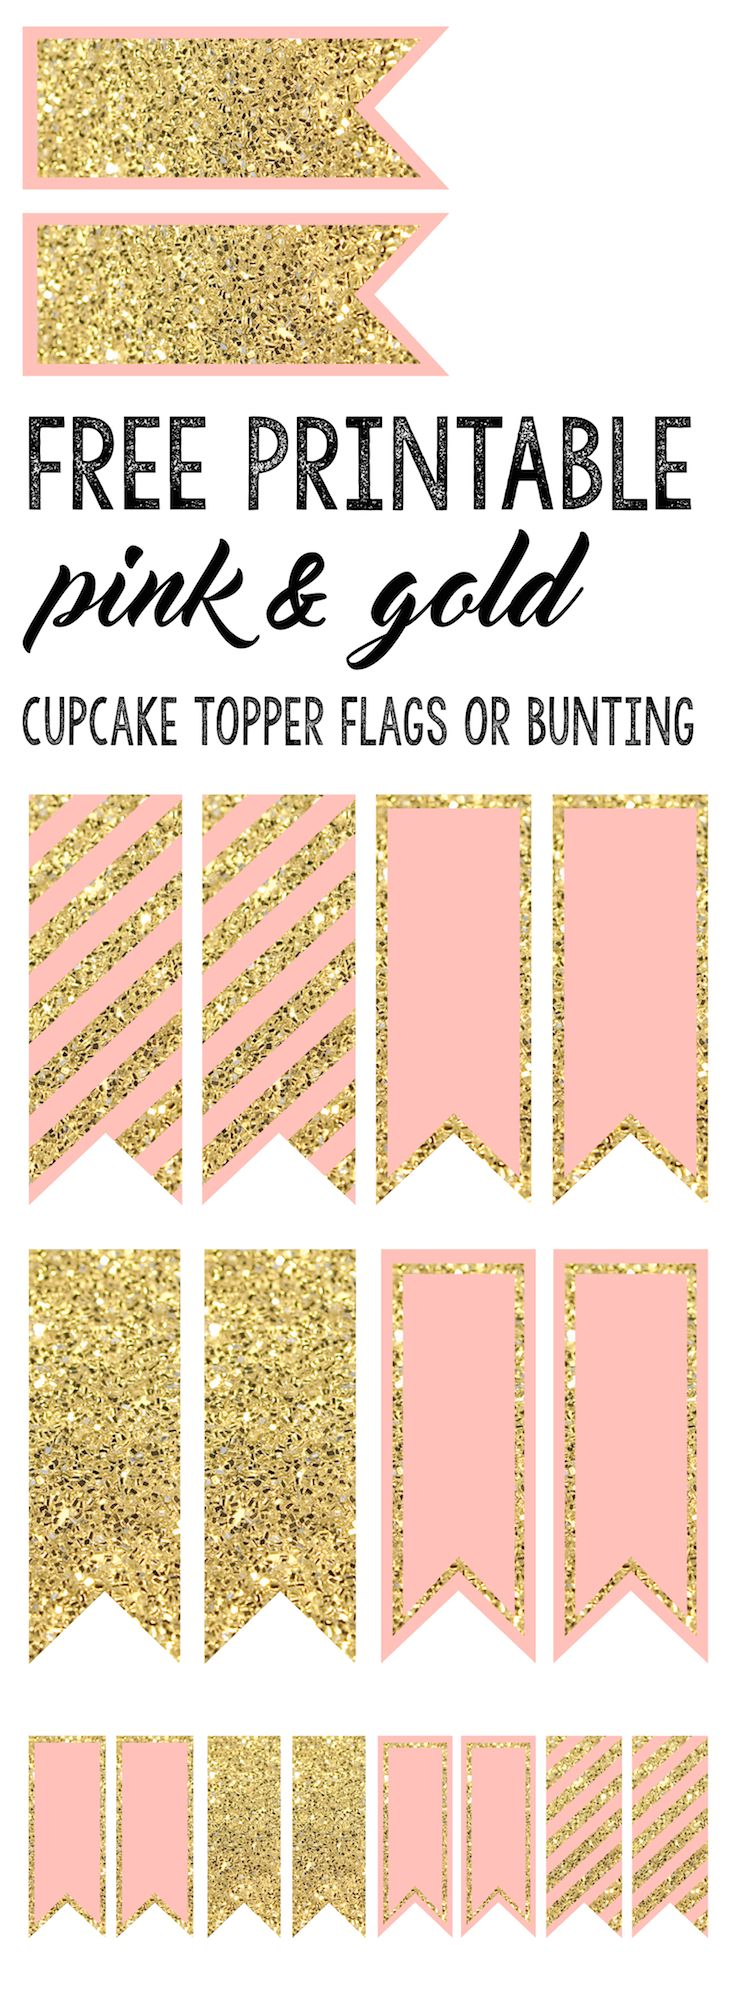 Pink and Gold Cupcake Topper Flags or Bunting. Free printable for a baby shower, wedding, bridal shower, or girl birthday party. Fun feminine theme.